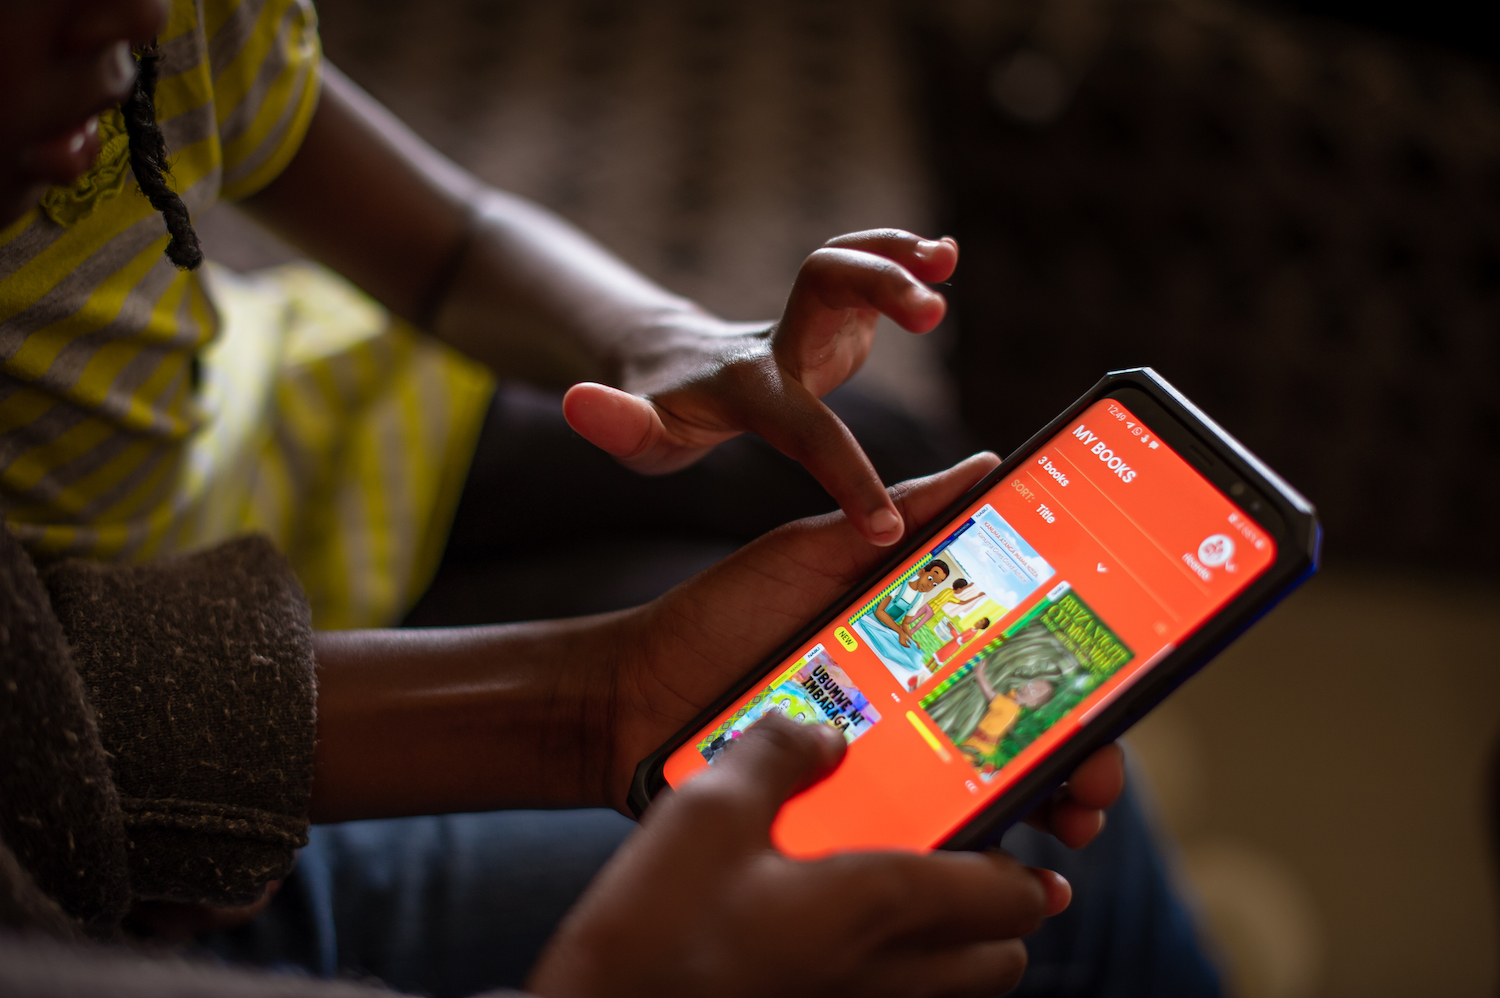 Kids reading in Families - App for Books in Mother Tongue Languages